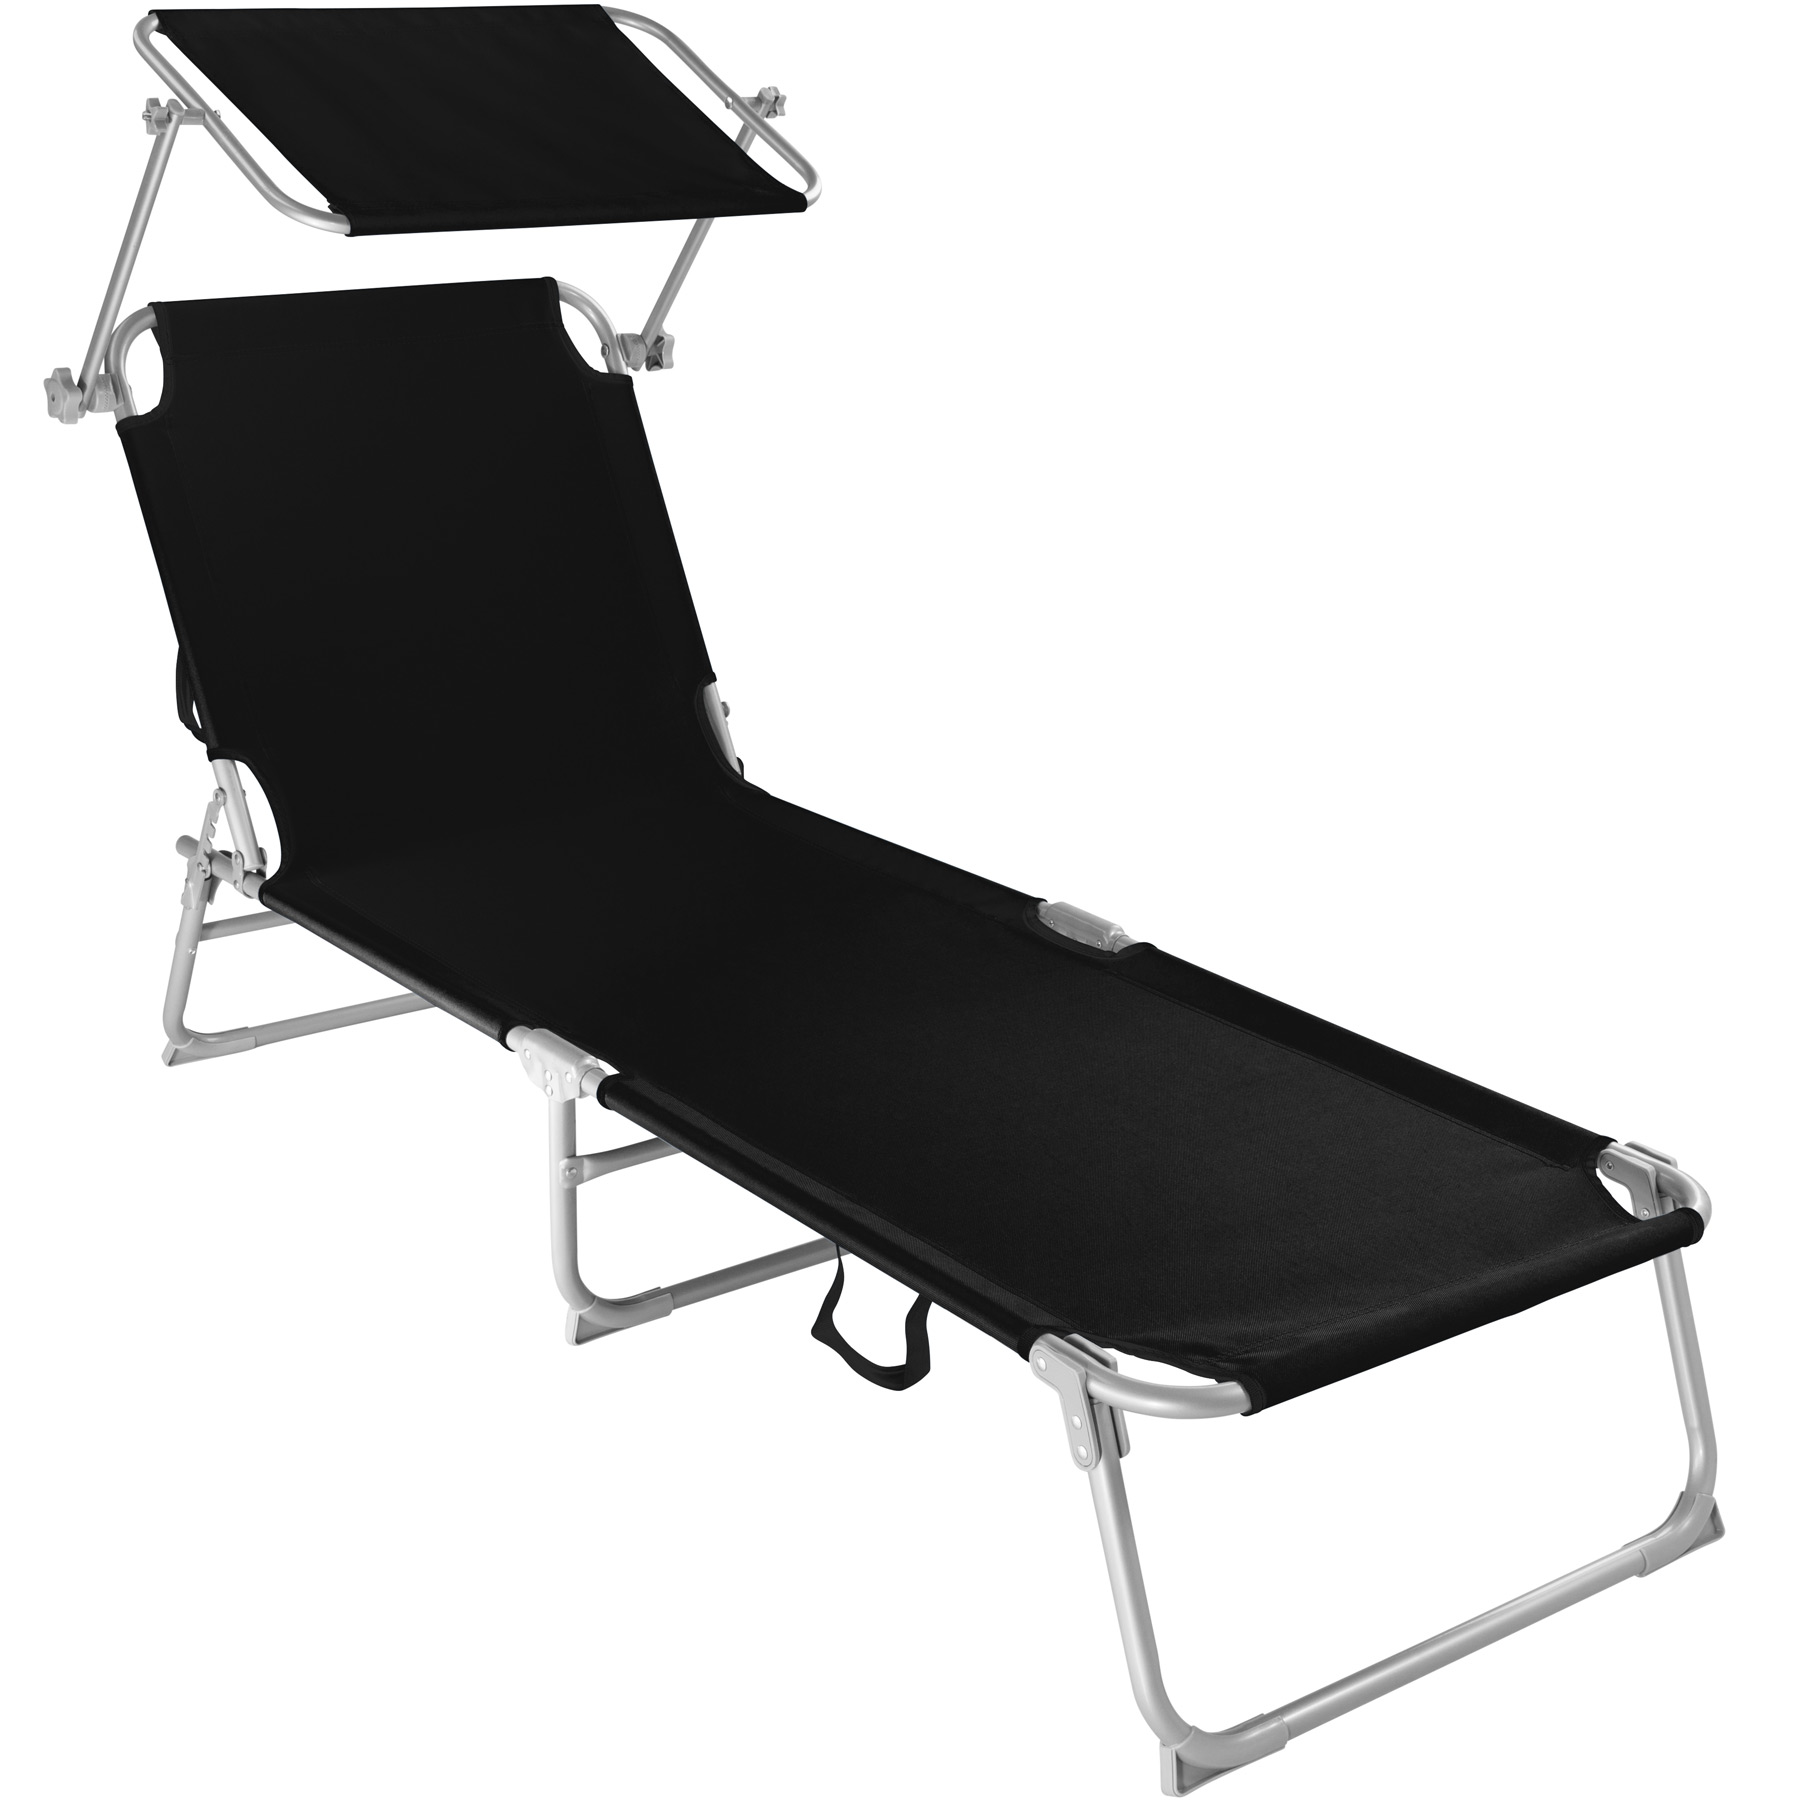 chaise longue de jardin pliante transat bain de soleil pare soleil noir neuf ebay. Black Bedroom Furniture Sets. Home Design Ideas